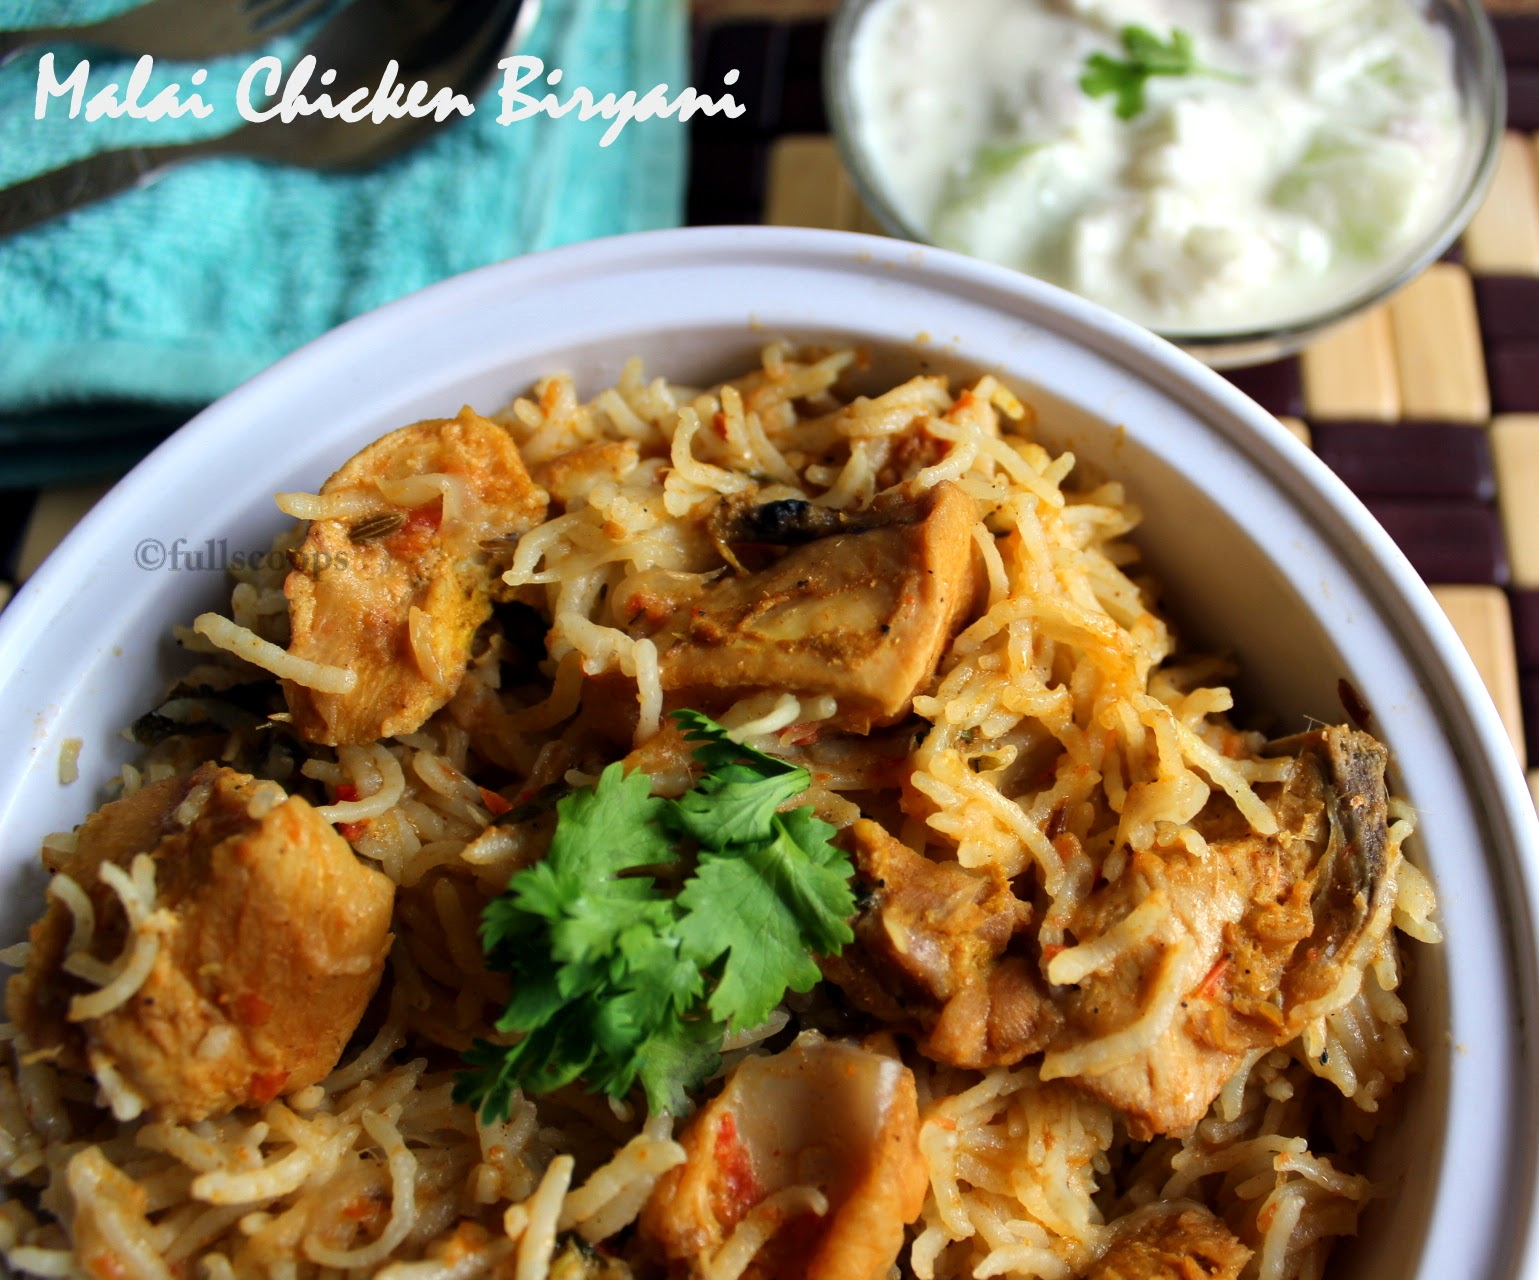 Malai Chicken Biryani